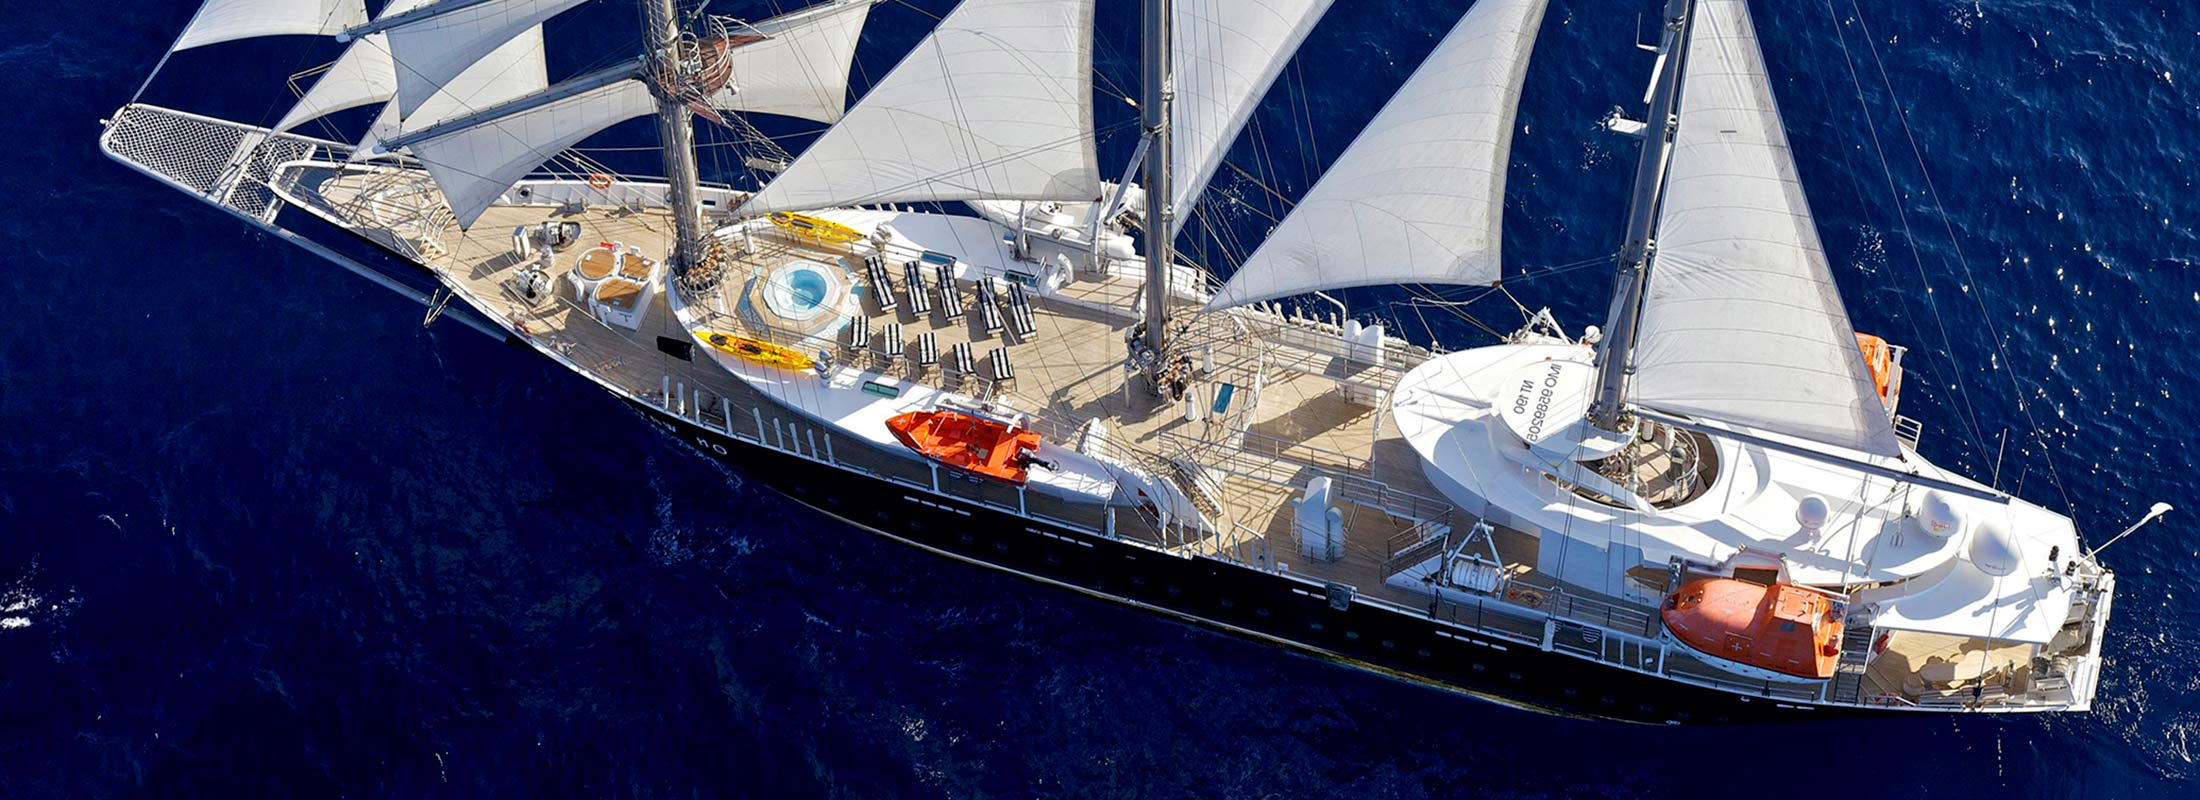 charter-a-sailing-or-motor-luxury-yacht-running-on-waves-gallery-2.jpg